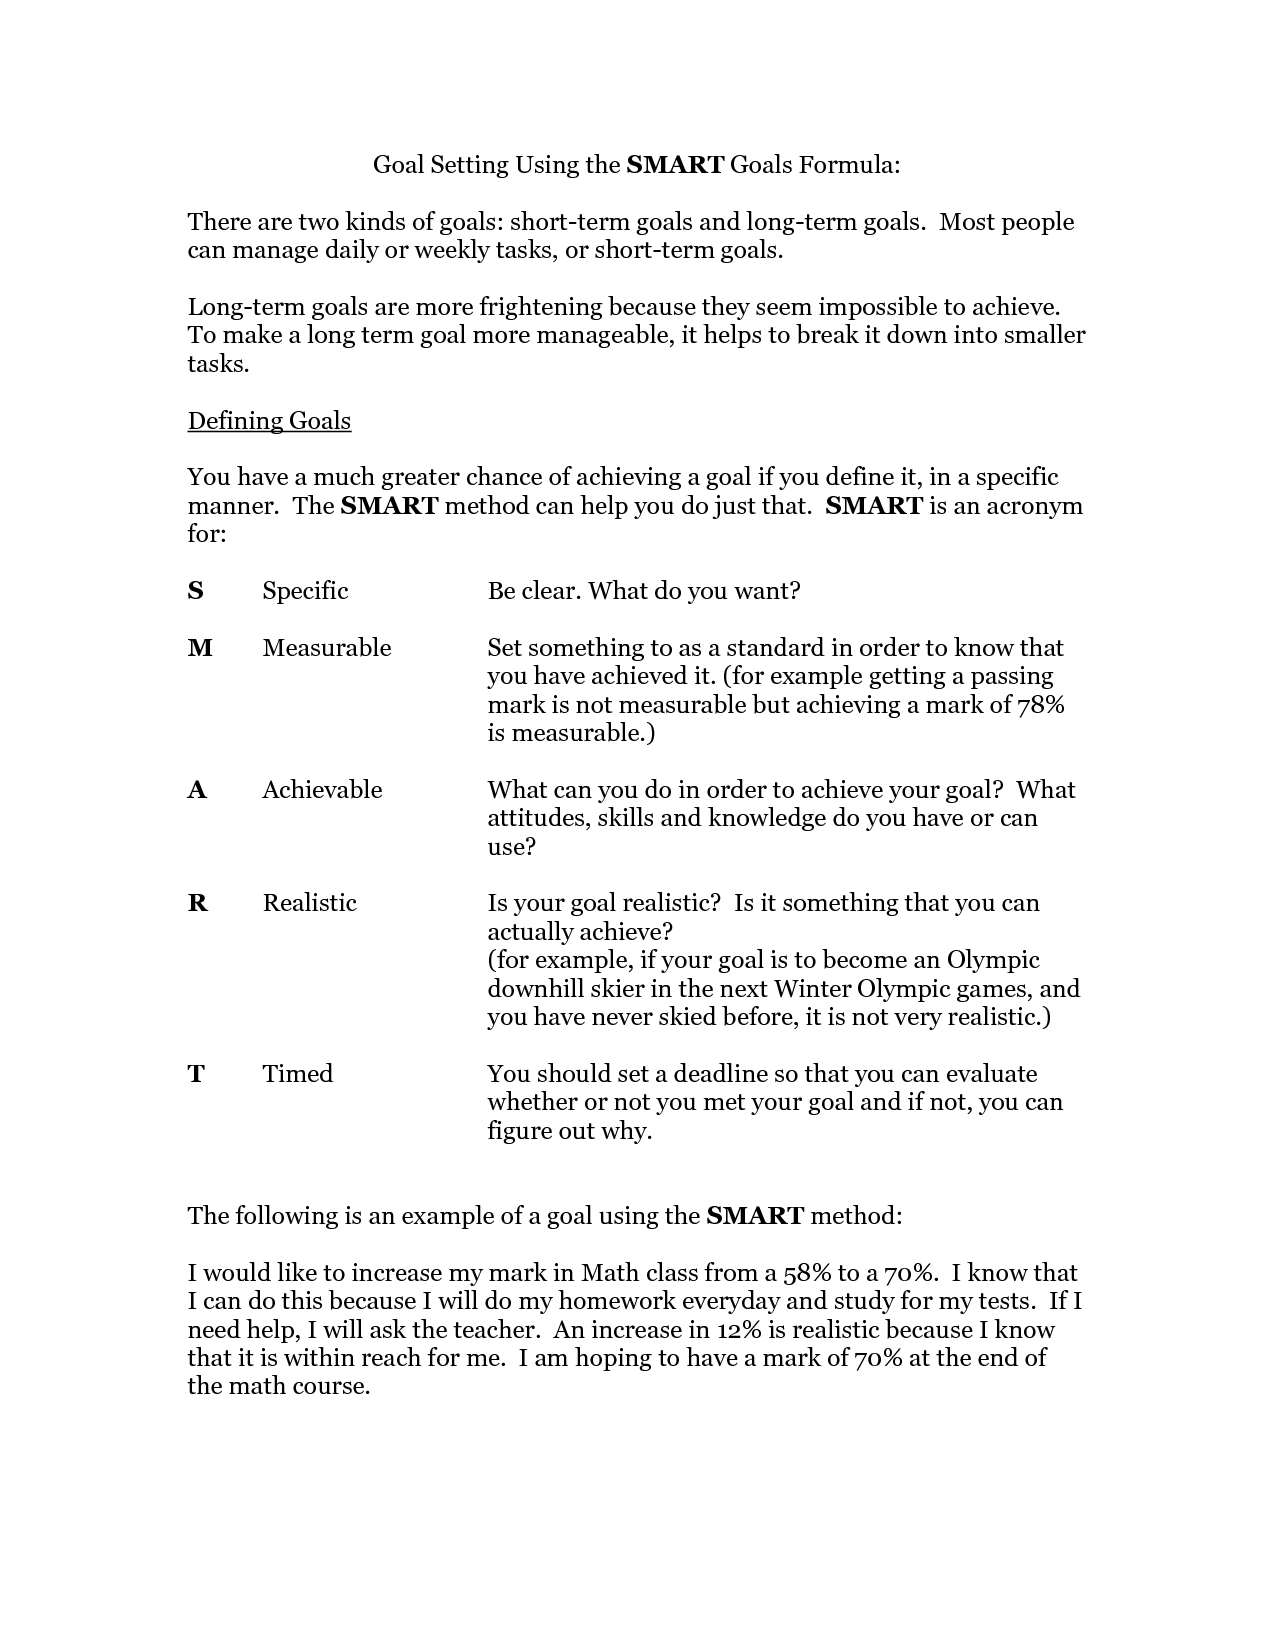 smart goals worksheet goal setting using the smart goals formula smart goals worksheet goal setting using the smart goals formula